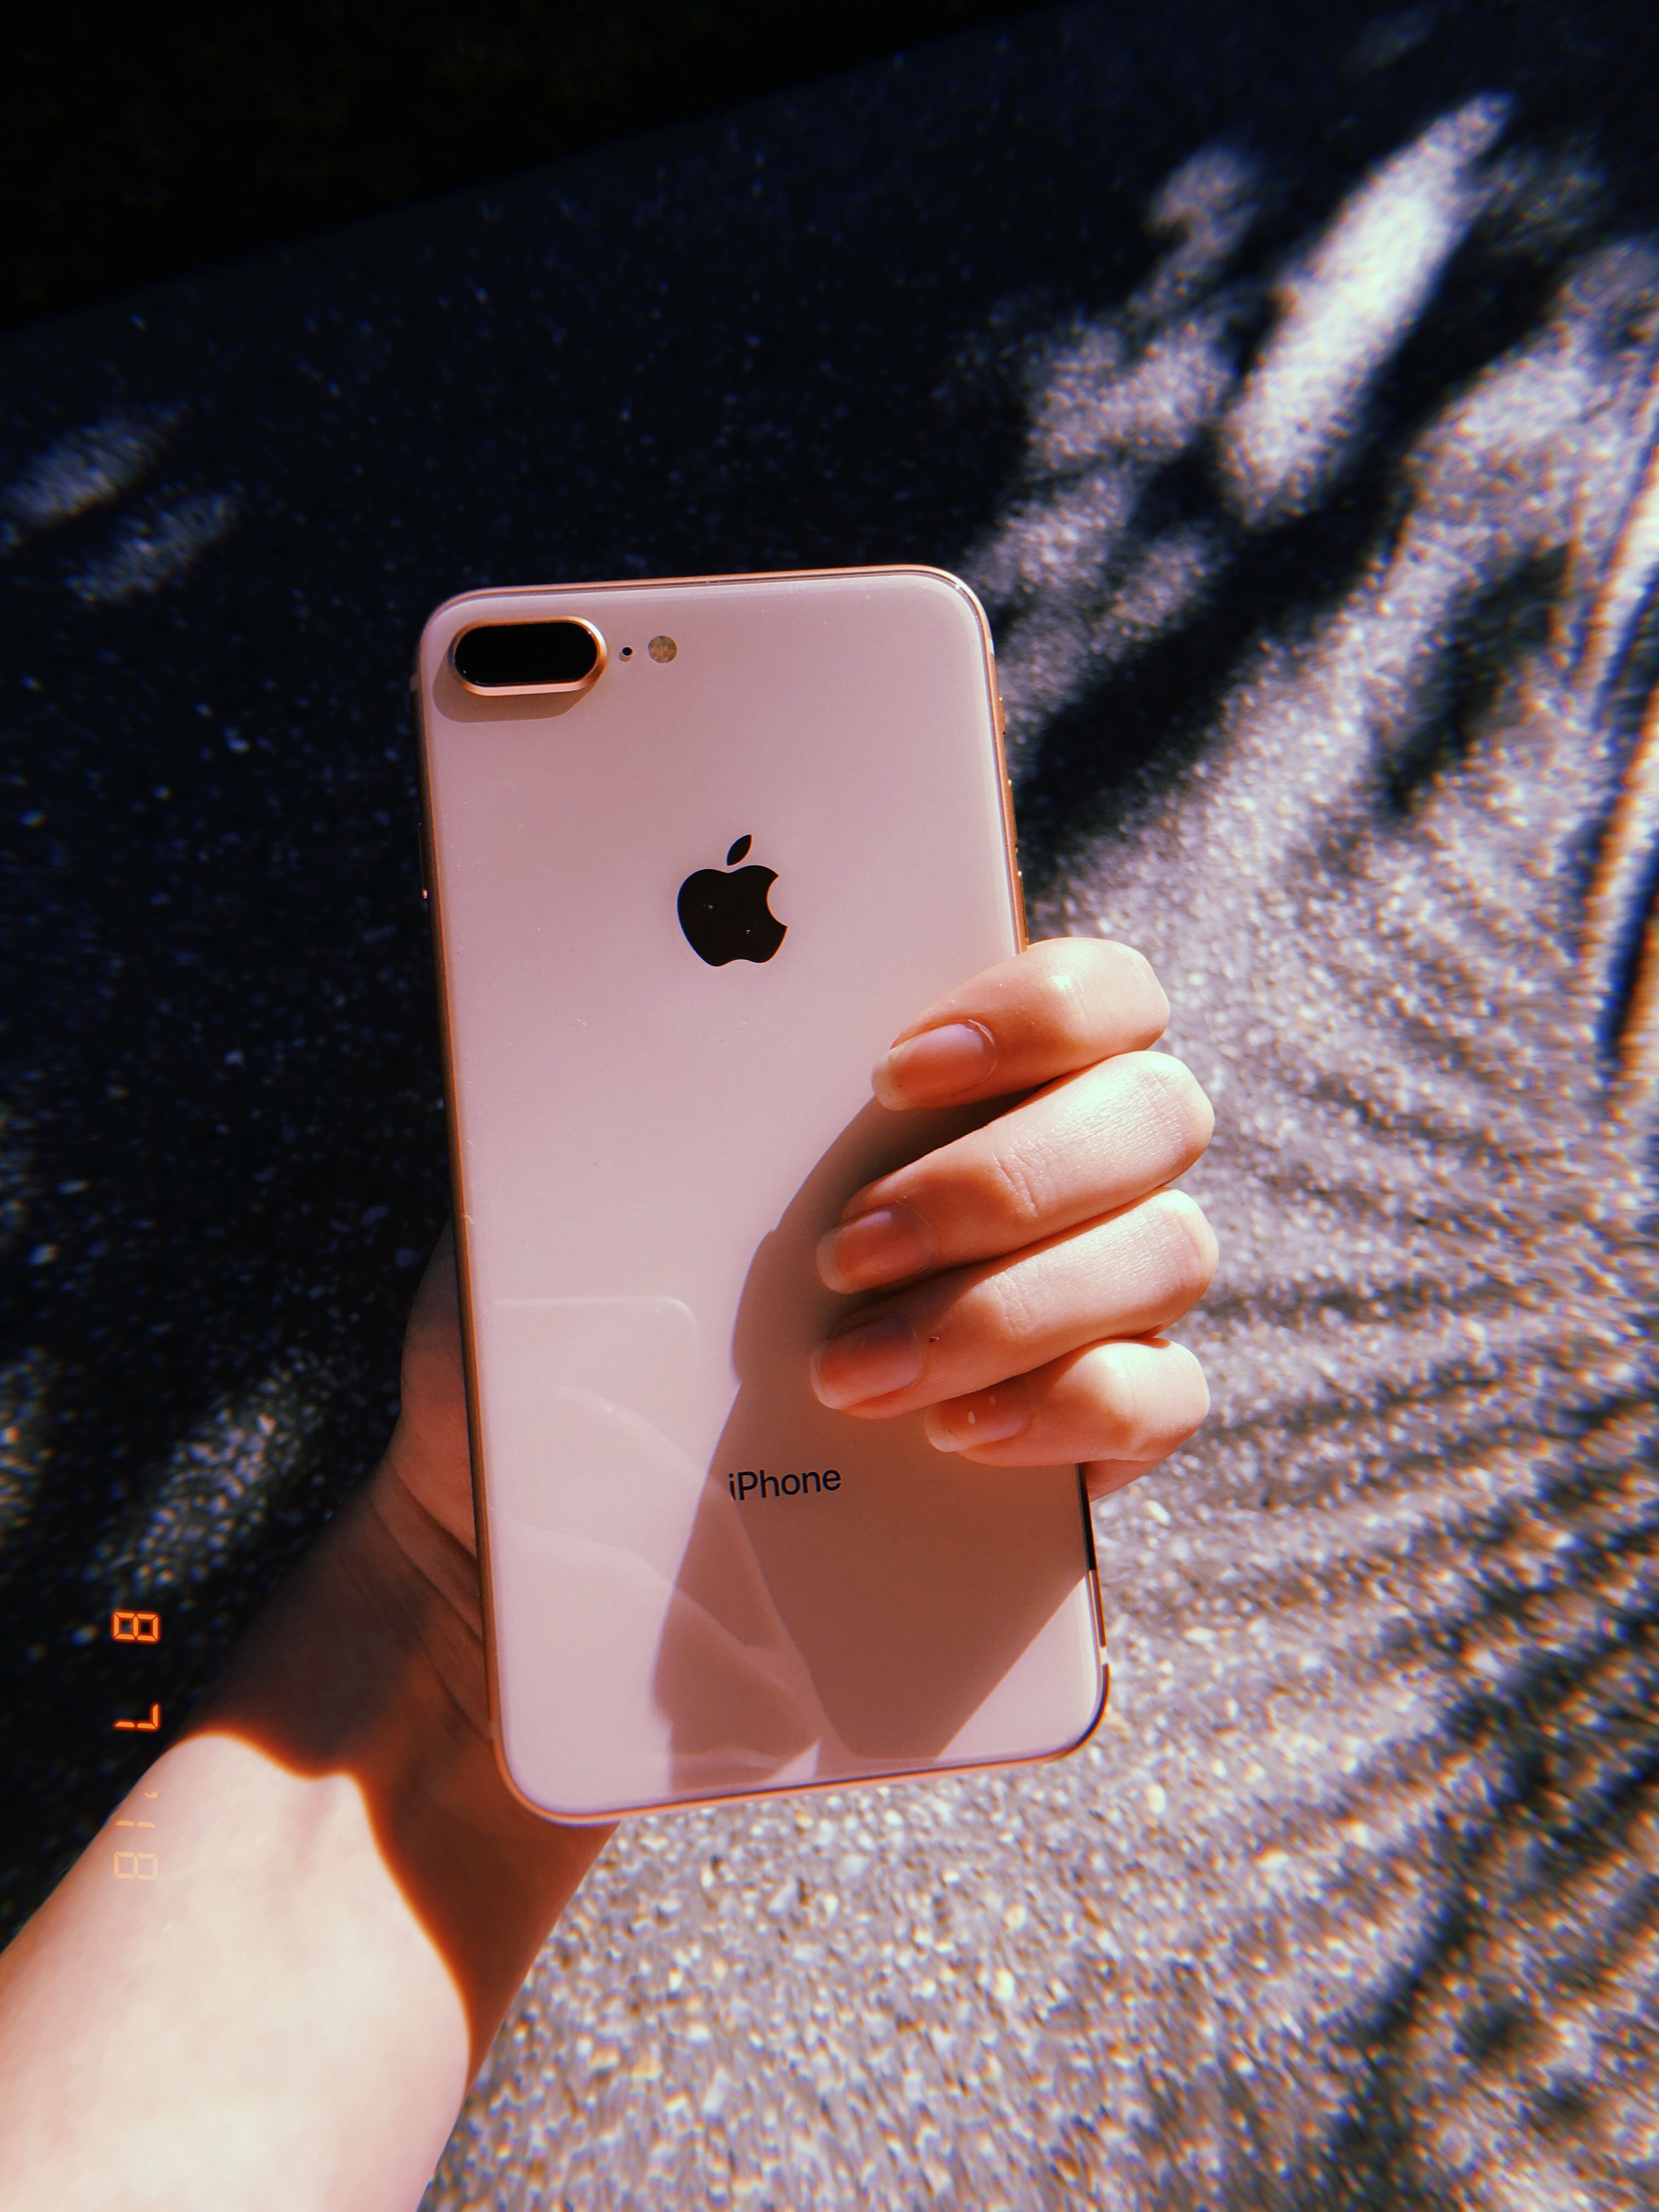 Pin By Maleni Maliya On Electronics In 2020 Iphone Iphone 7plus Rose Gold Gold Iphone